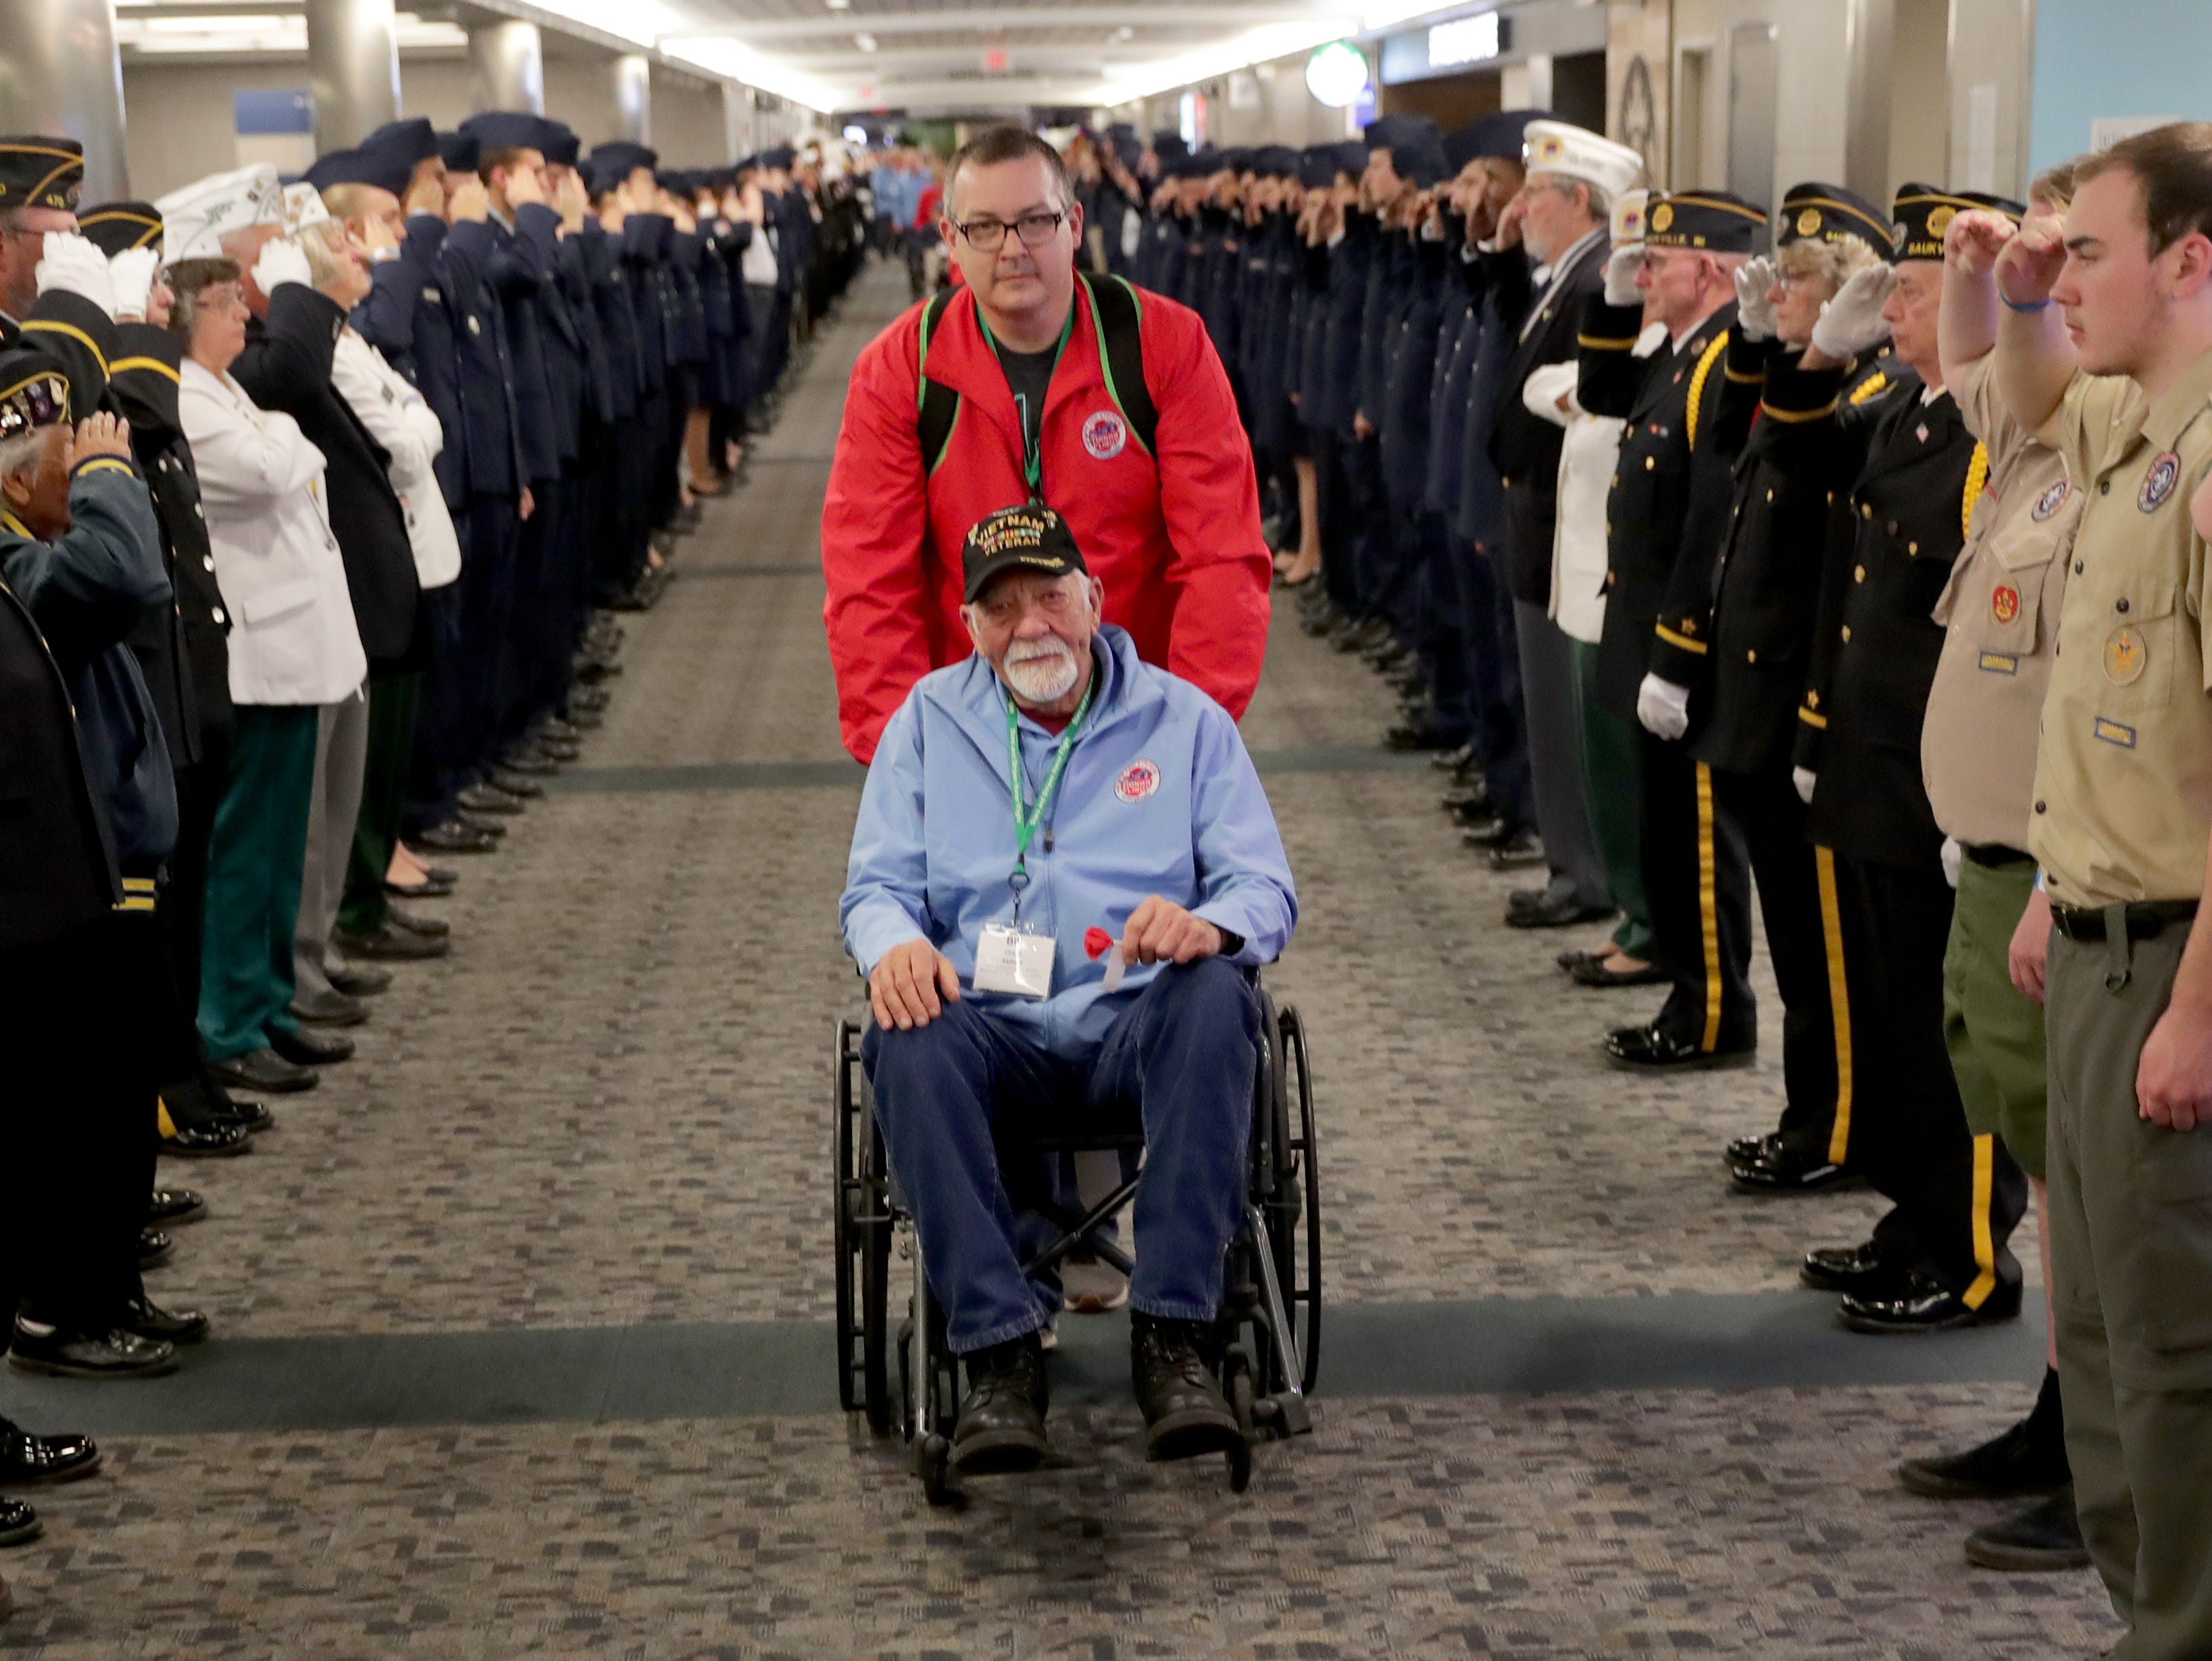 Vietnam Army veteran Bill Grant of West Allis is saluted after getting off the plane with his guardian, Travis Lewein, during the Stars and Stripes Honor Flight welcome home ceremony at Mitchell International Airport in Milwaukee on Saturday.